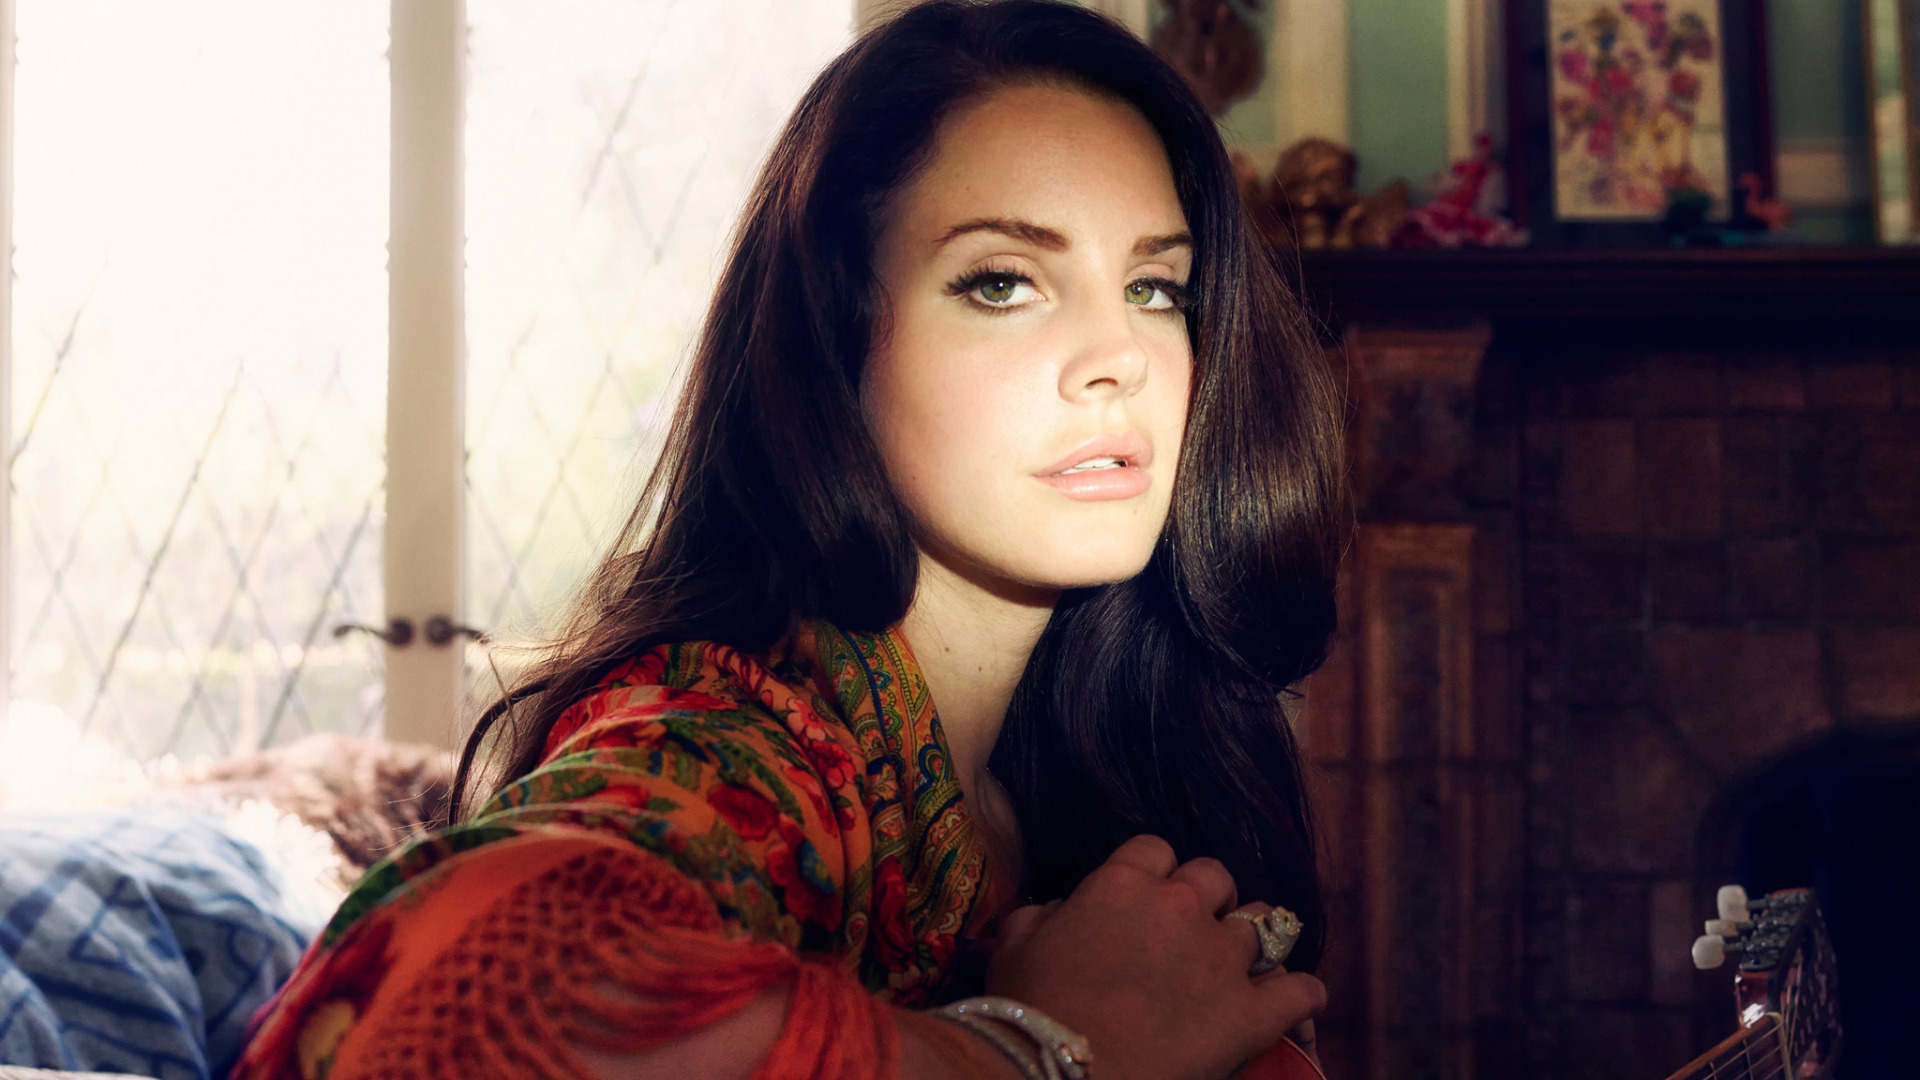 Download Wallpaper Guitar Pop Singer Songwriter Lana Del Rey